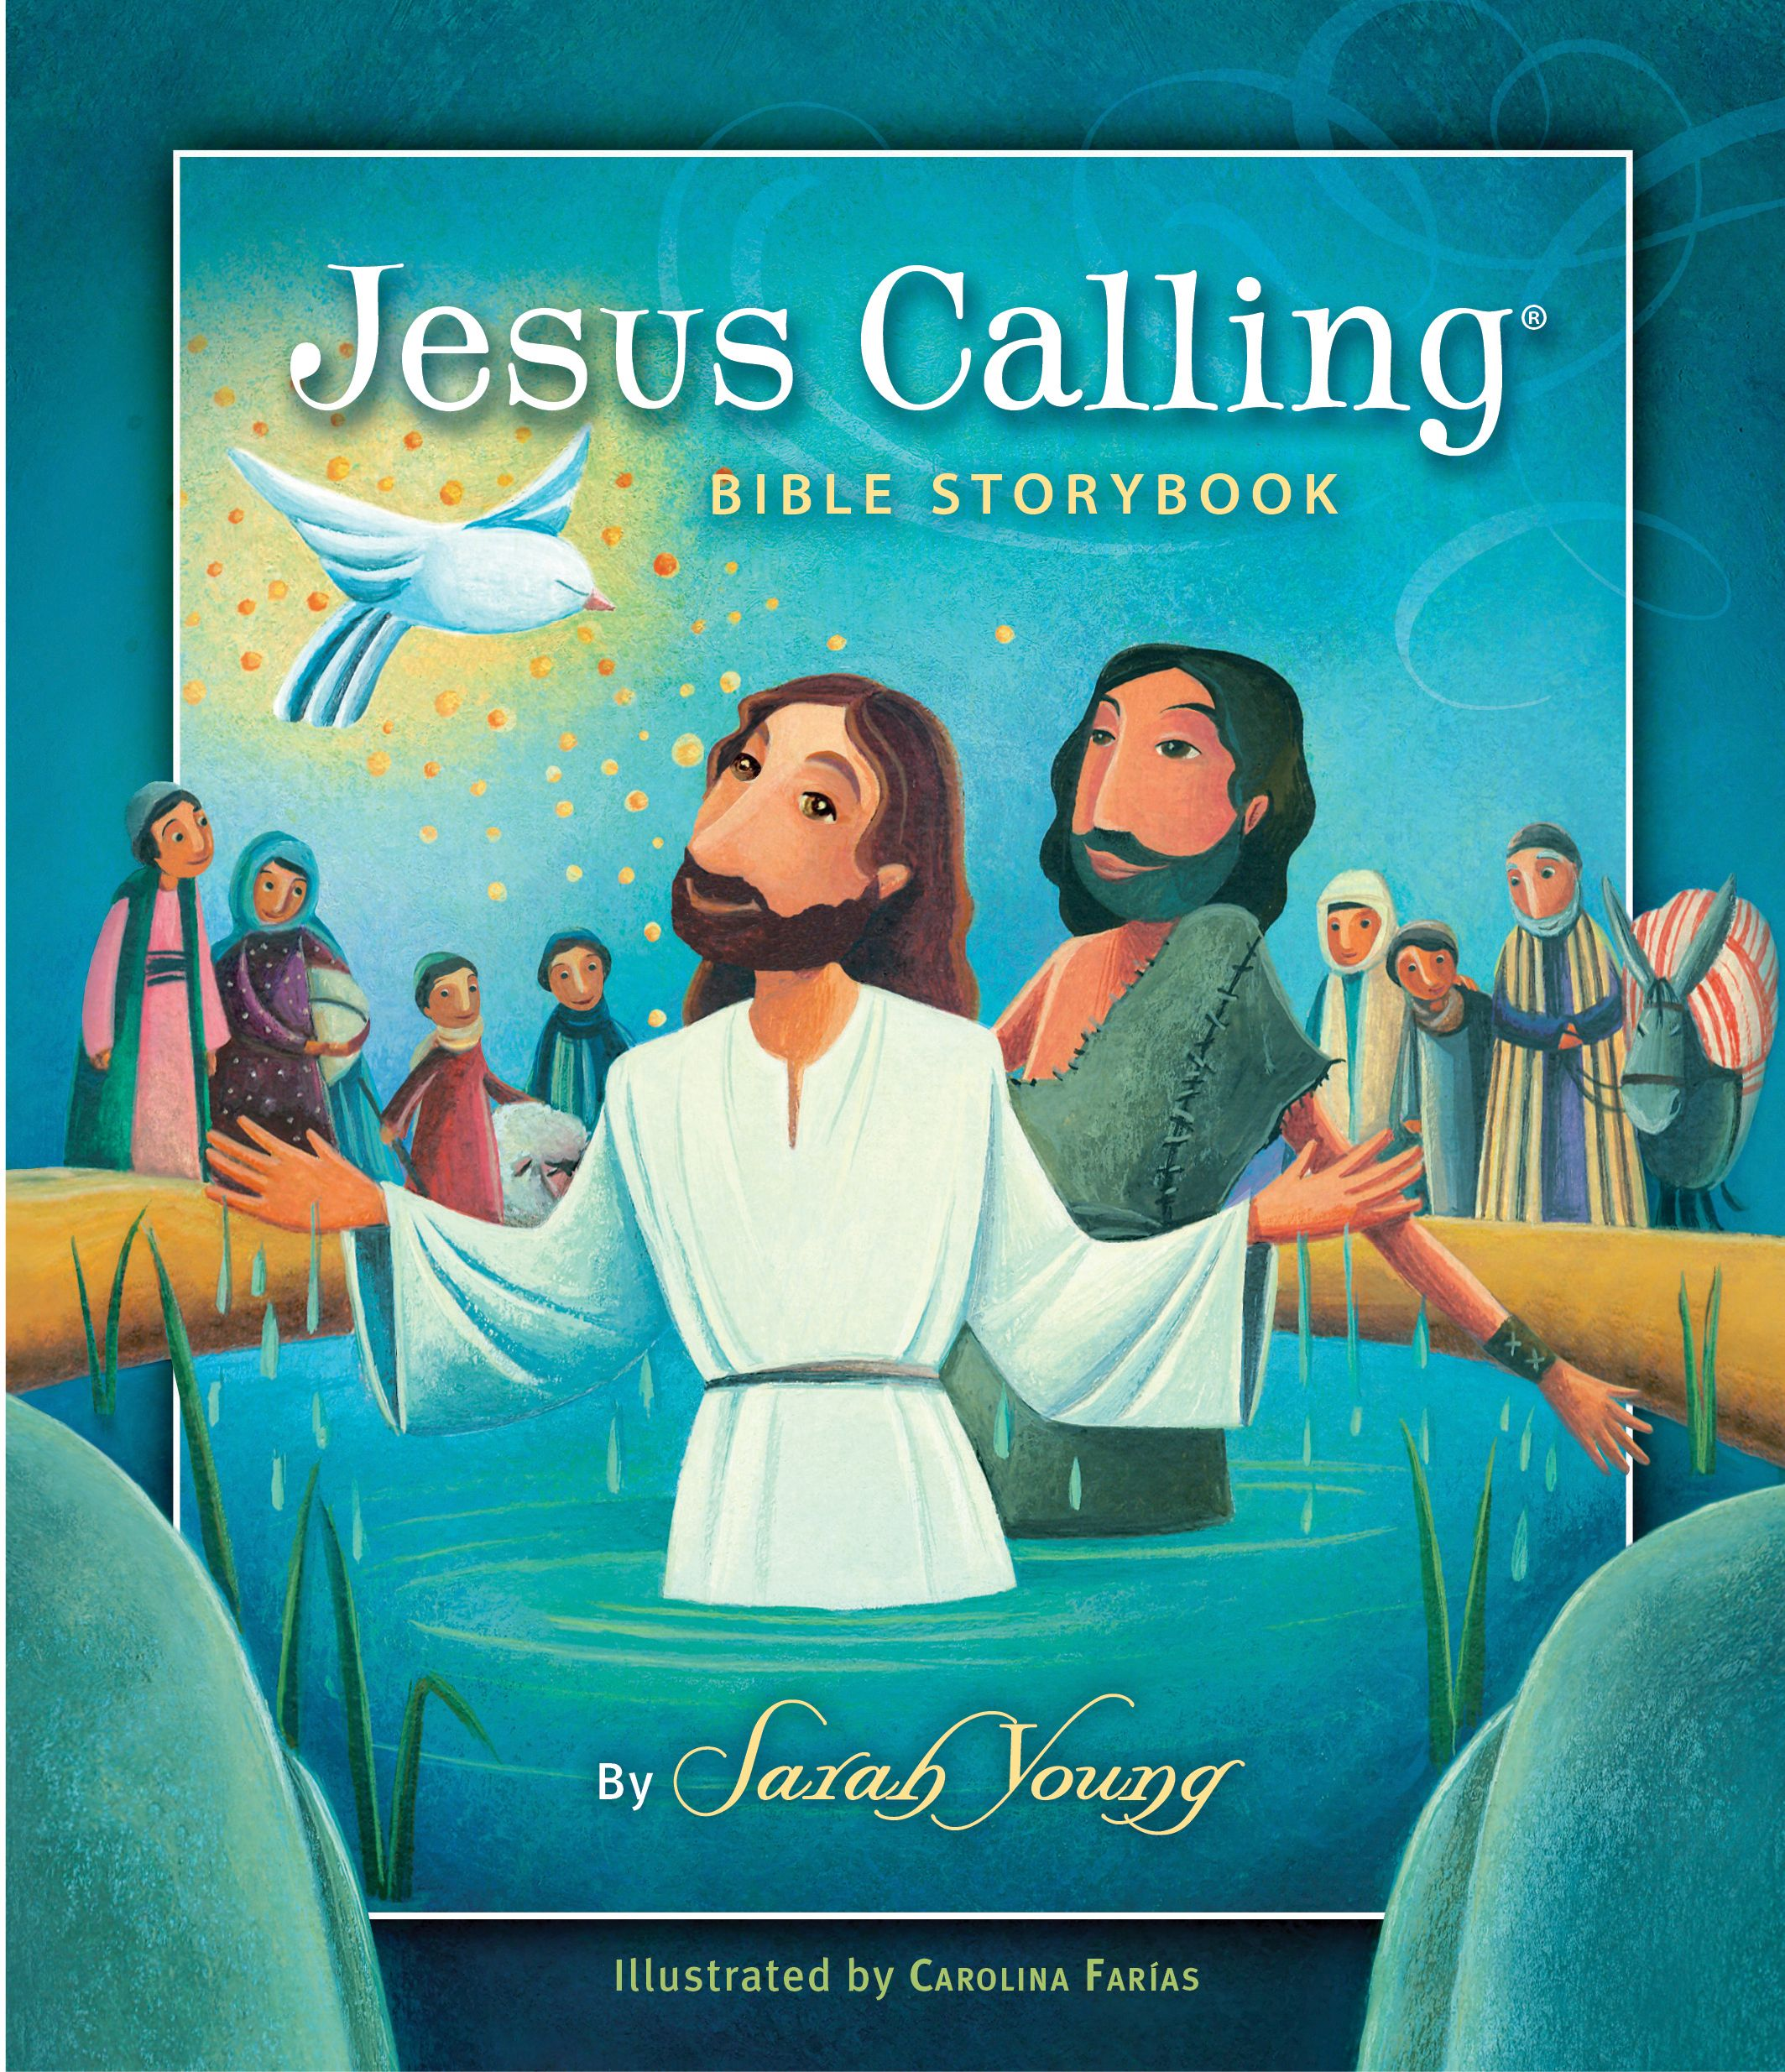 free coloring sheets in the style of the jesus calling bible